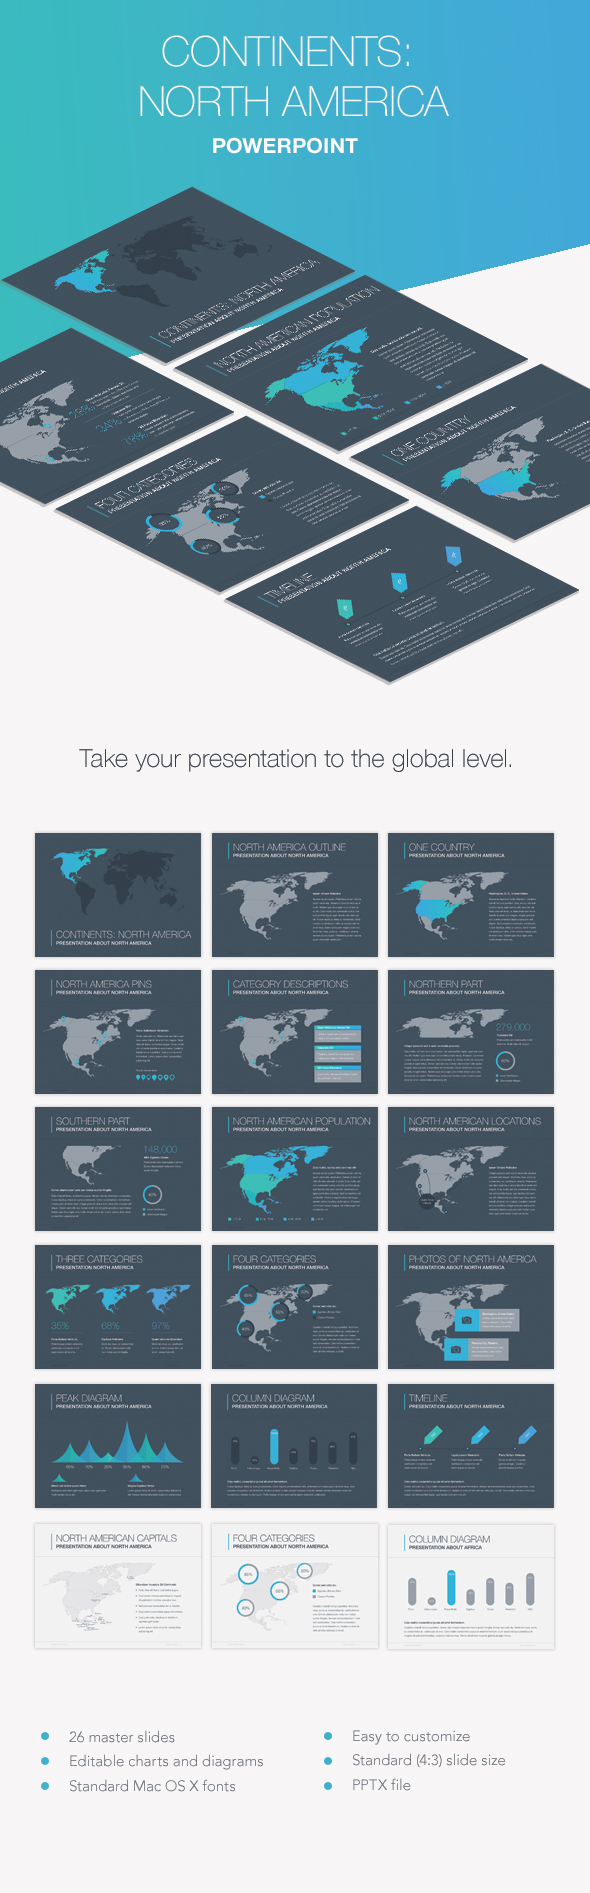 Continents north america powerpoint template by jumsoft graphicriver continents north america powerpoint template presentation templates toneelgroepblik Image collections